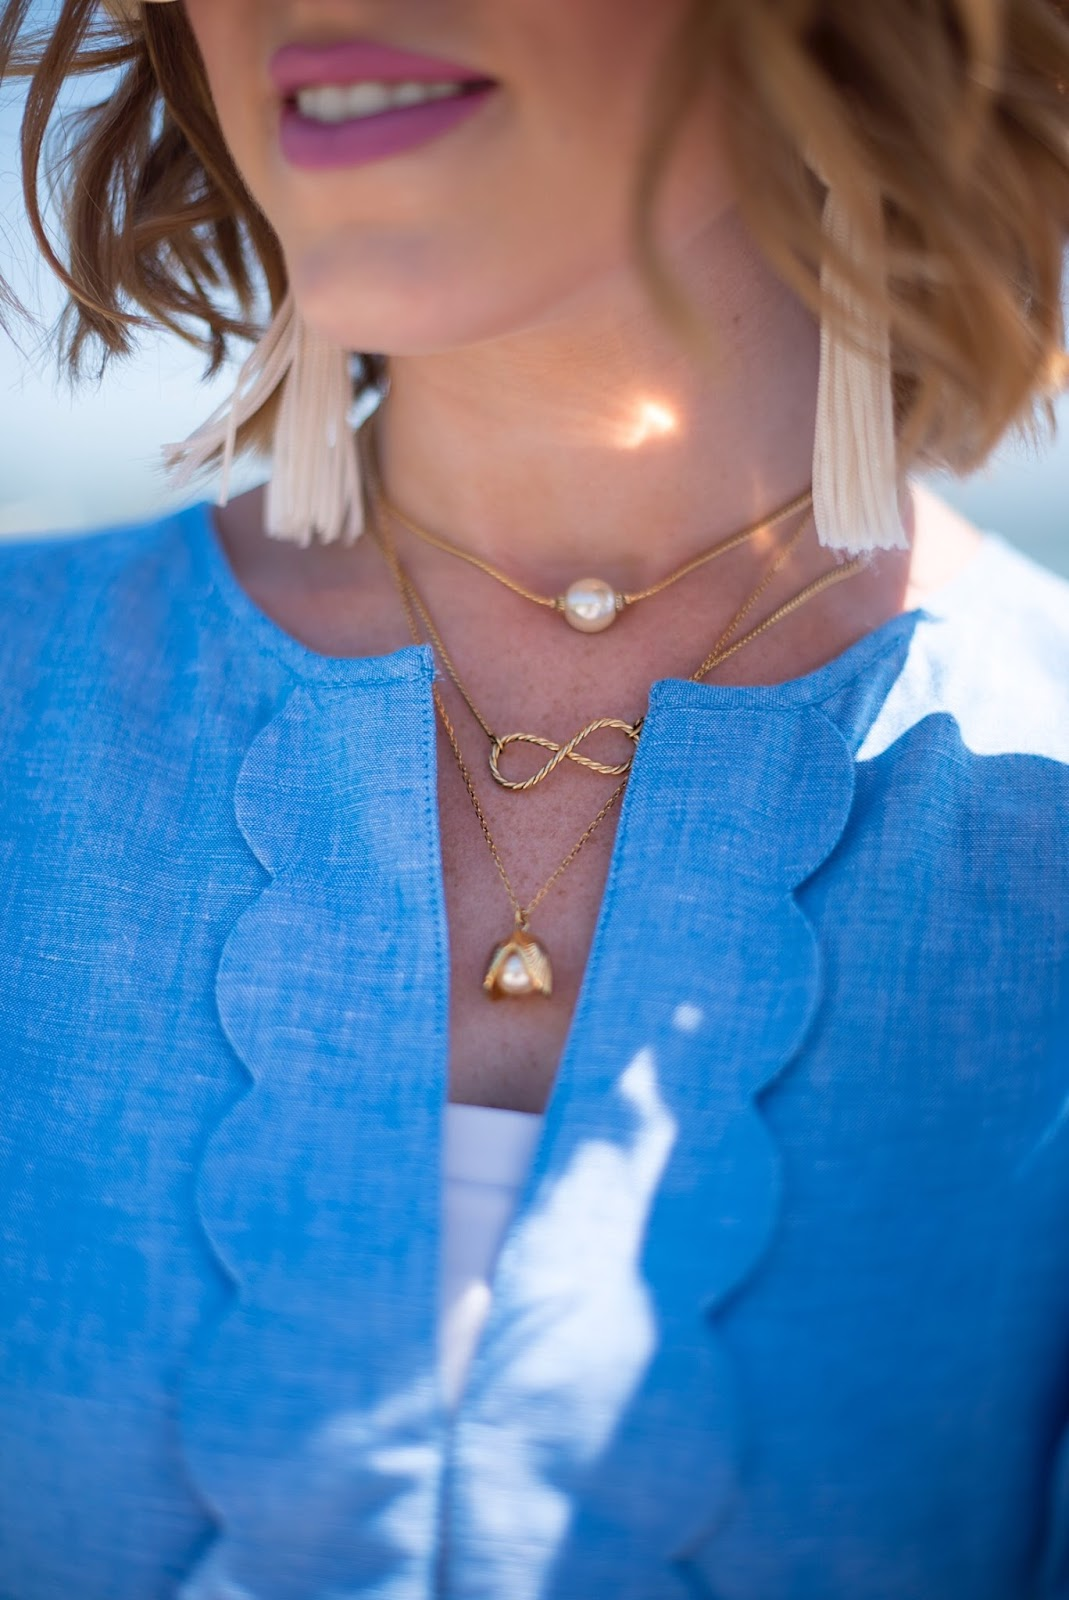 KJP Necklaces - Click through to see more on Something Delightful Blog!